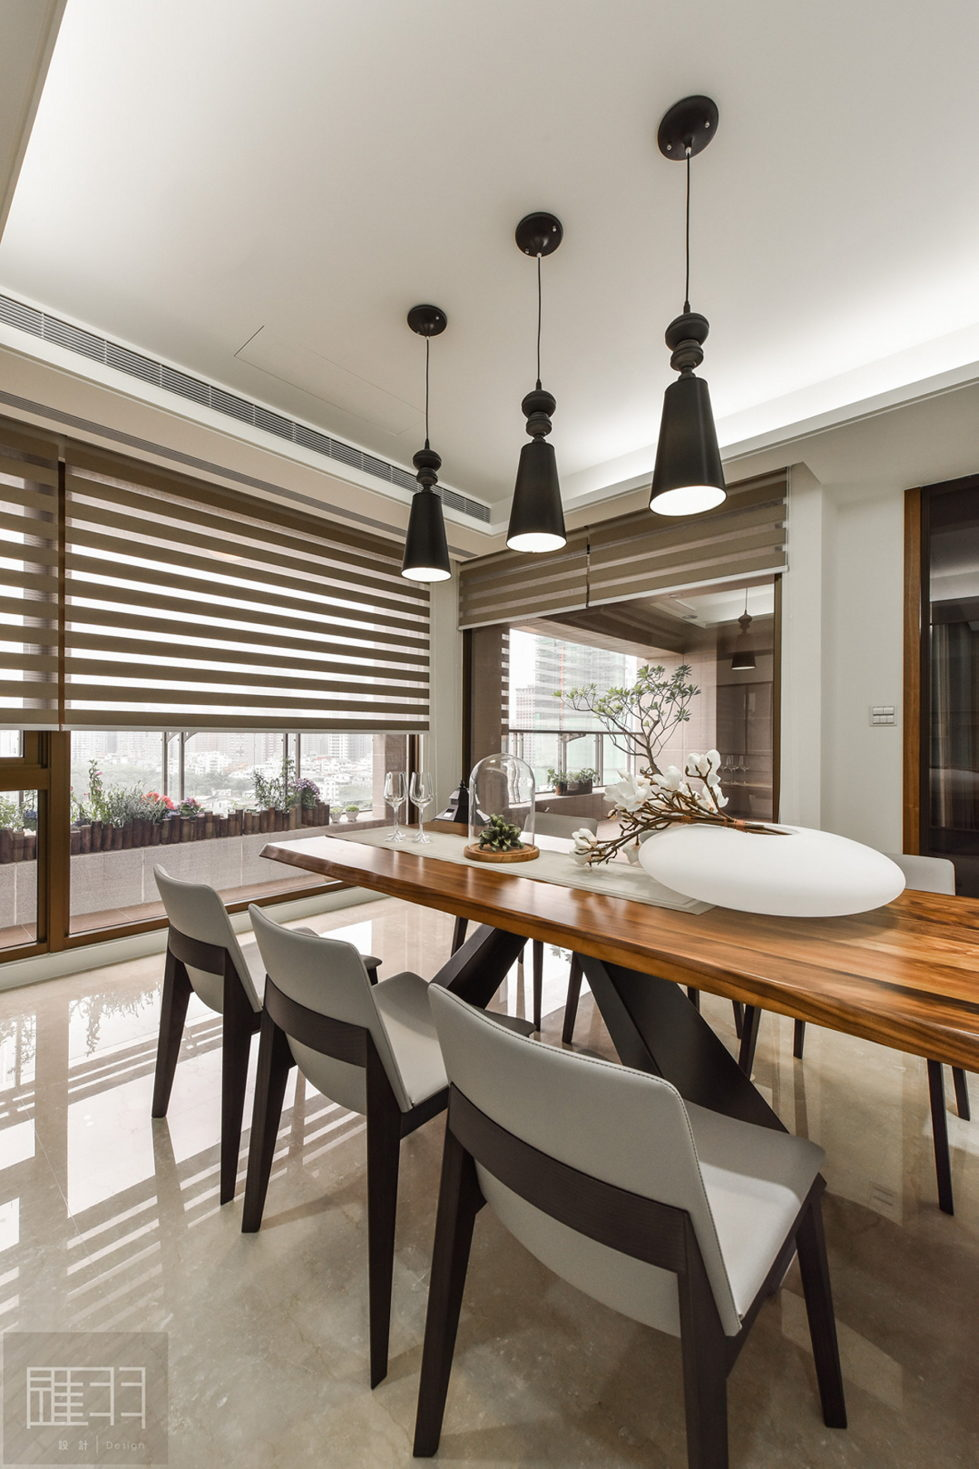 Interior Of The Apartment In Taiwan From Manson Hsiao, Hui-yu Interior Design Studio 15